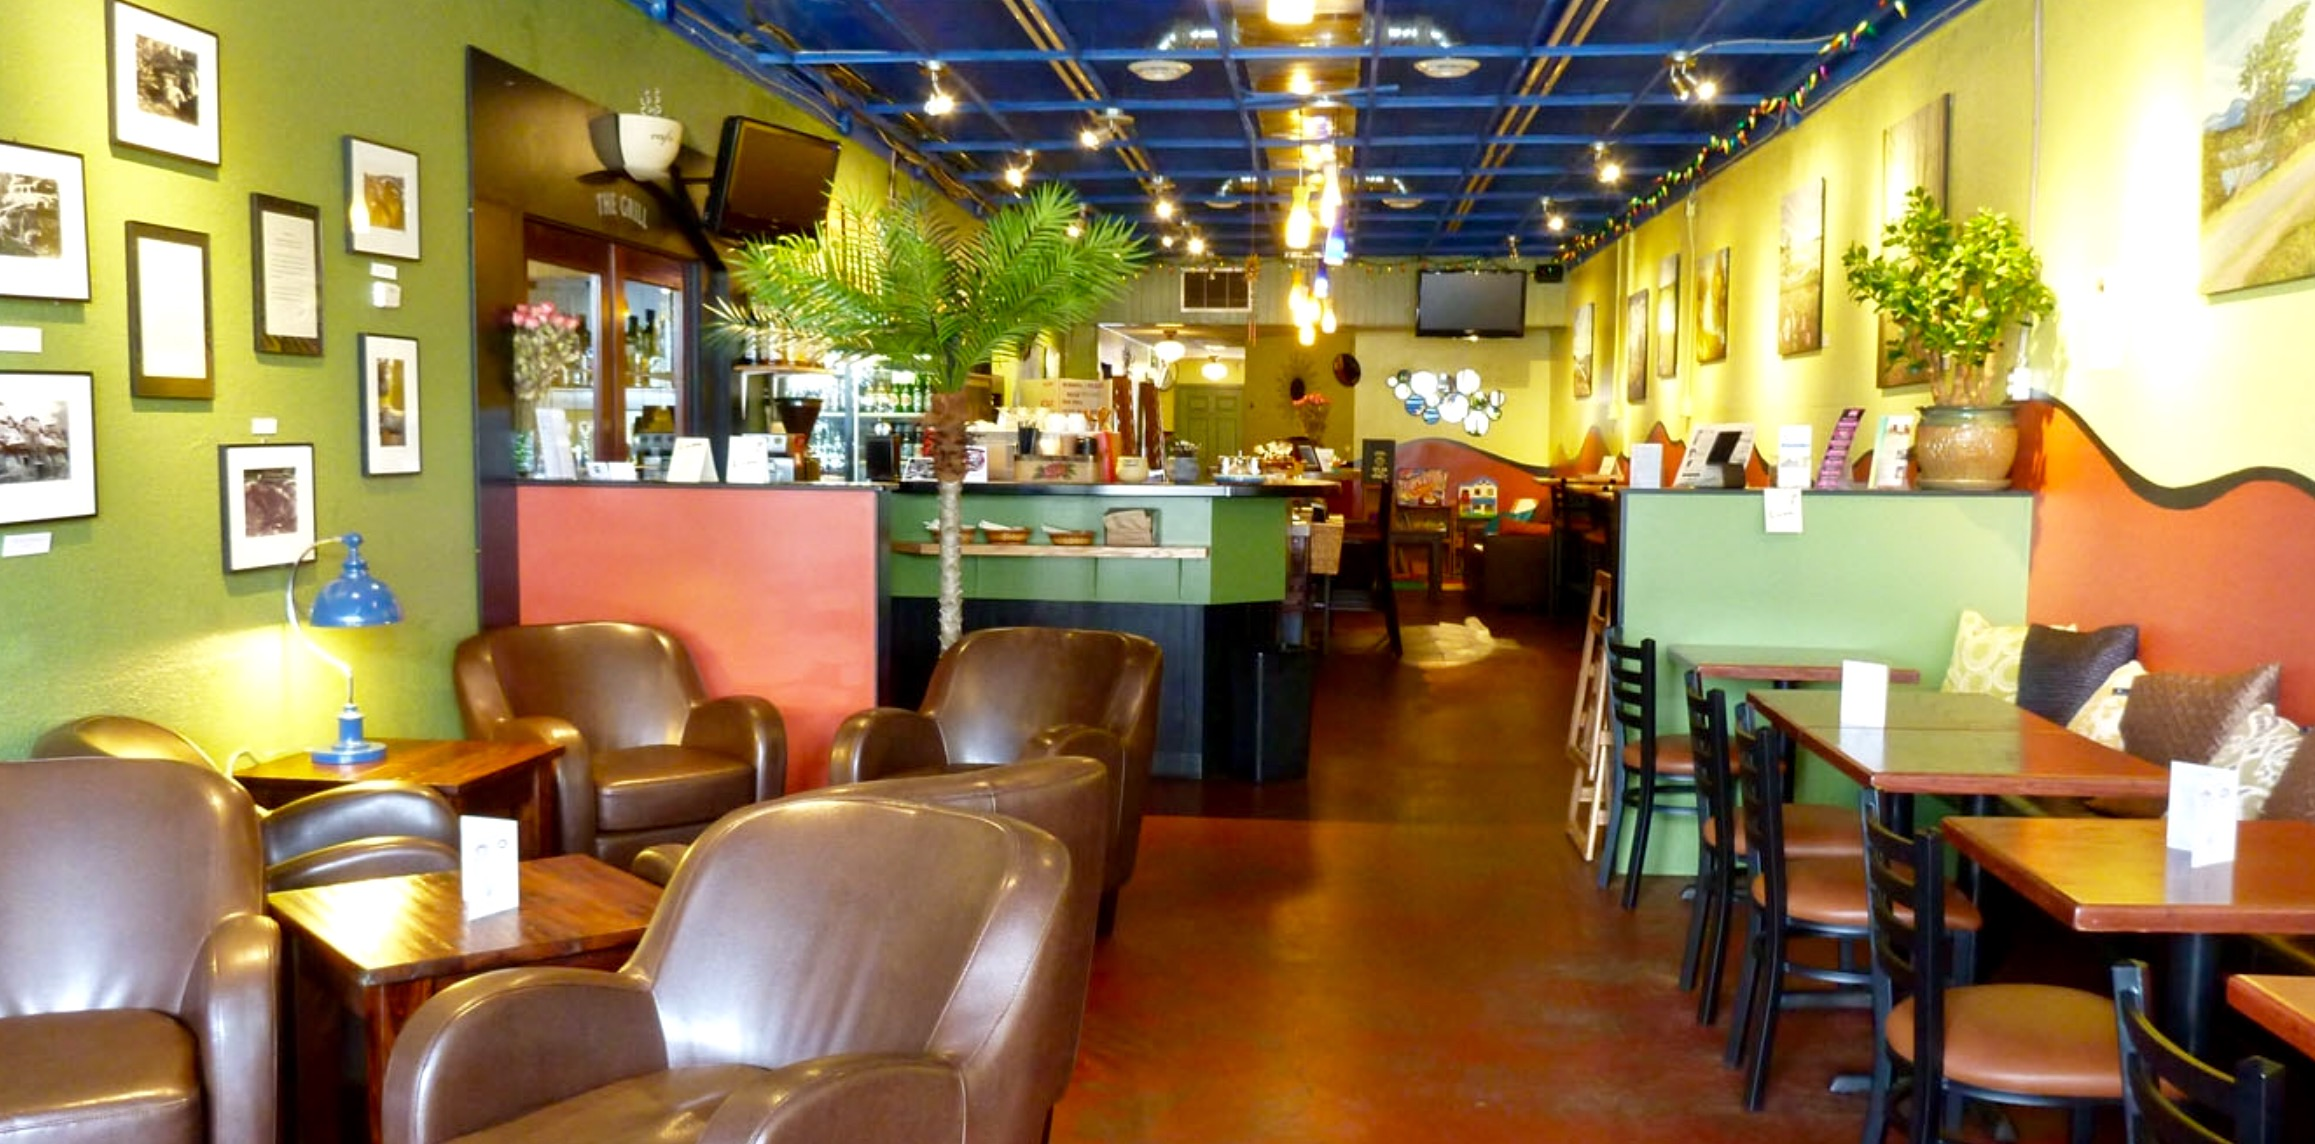 Case Study: Union Street Grill & Grotto